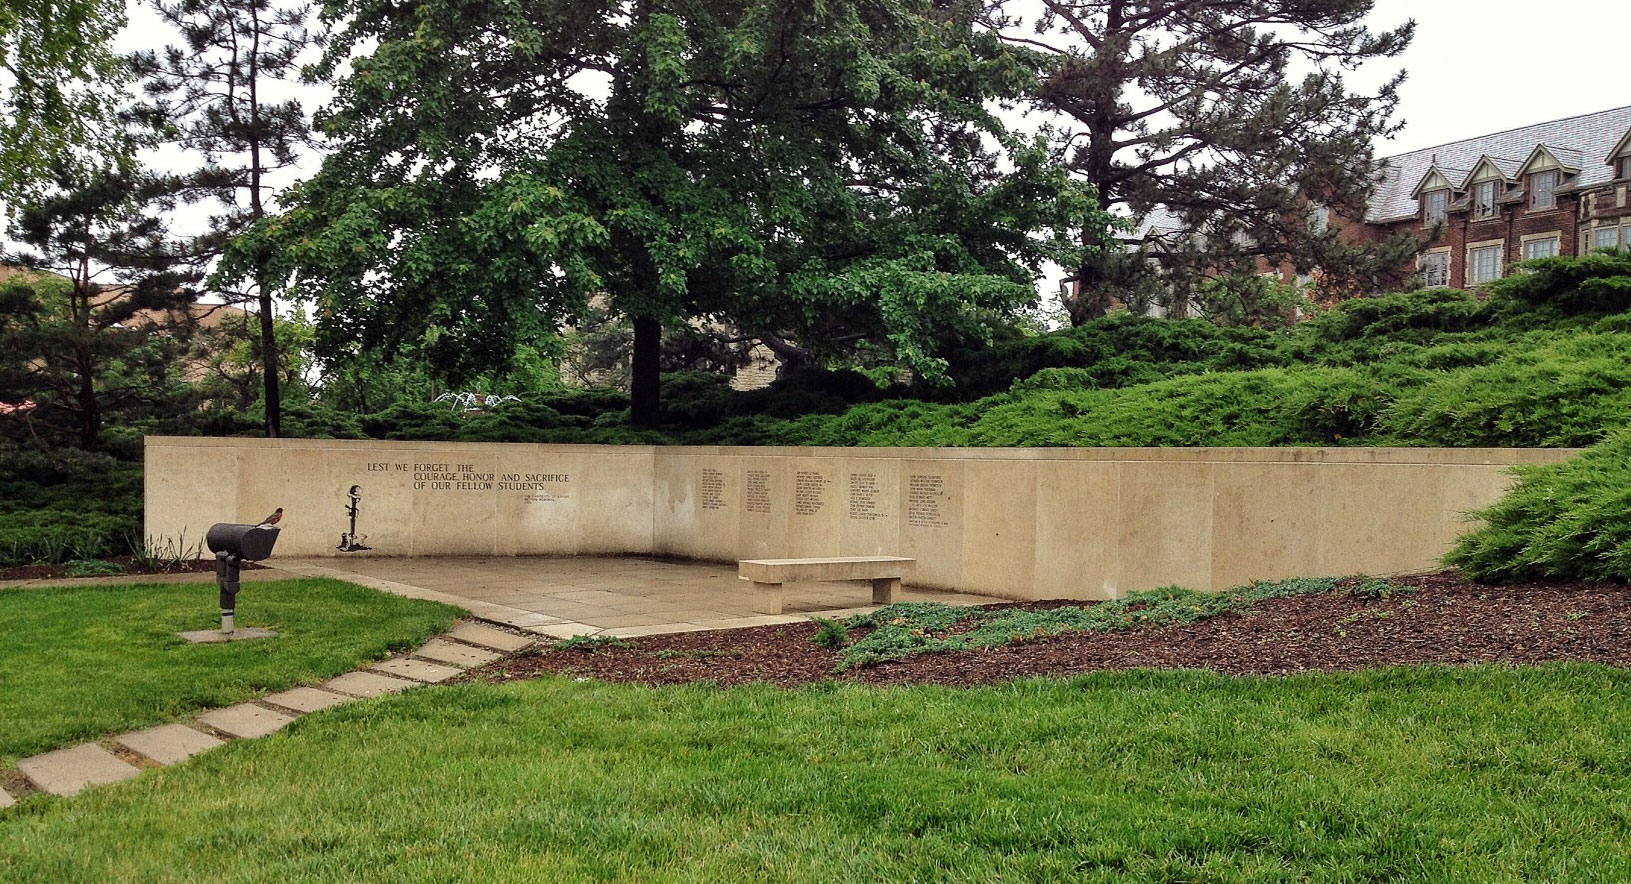 On May 25, 1986, student leaders unveiled the KU Vietnam Memorial in Marvin Grove on the University of Kansas campus. (Photo by J. Schafer)